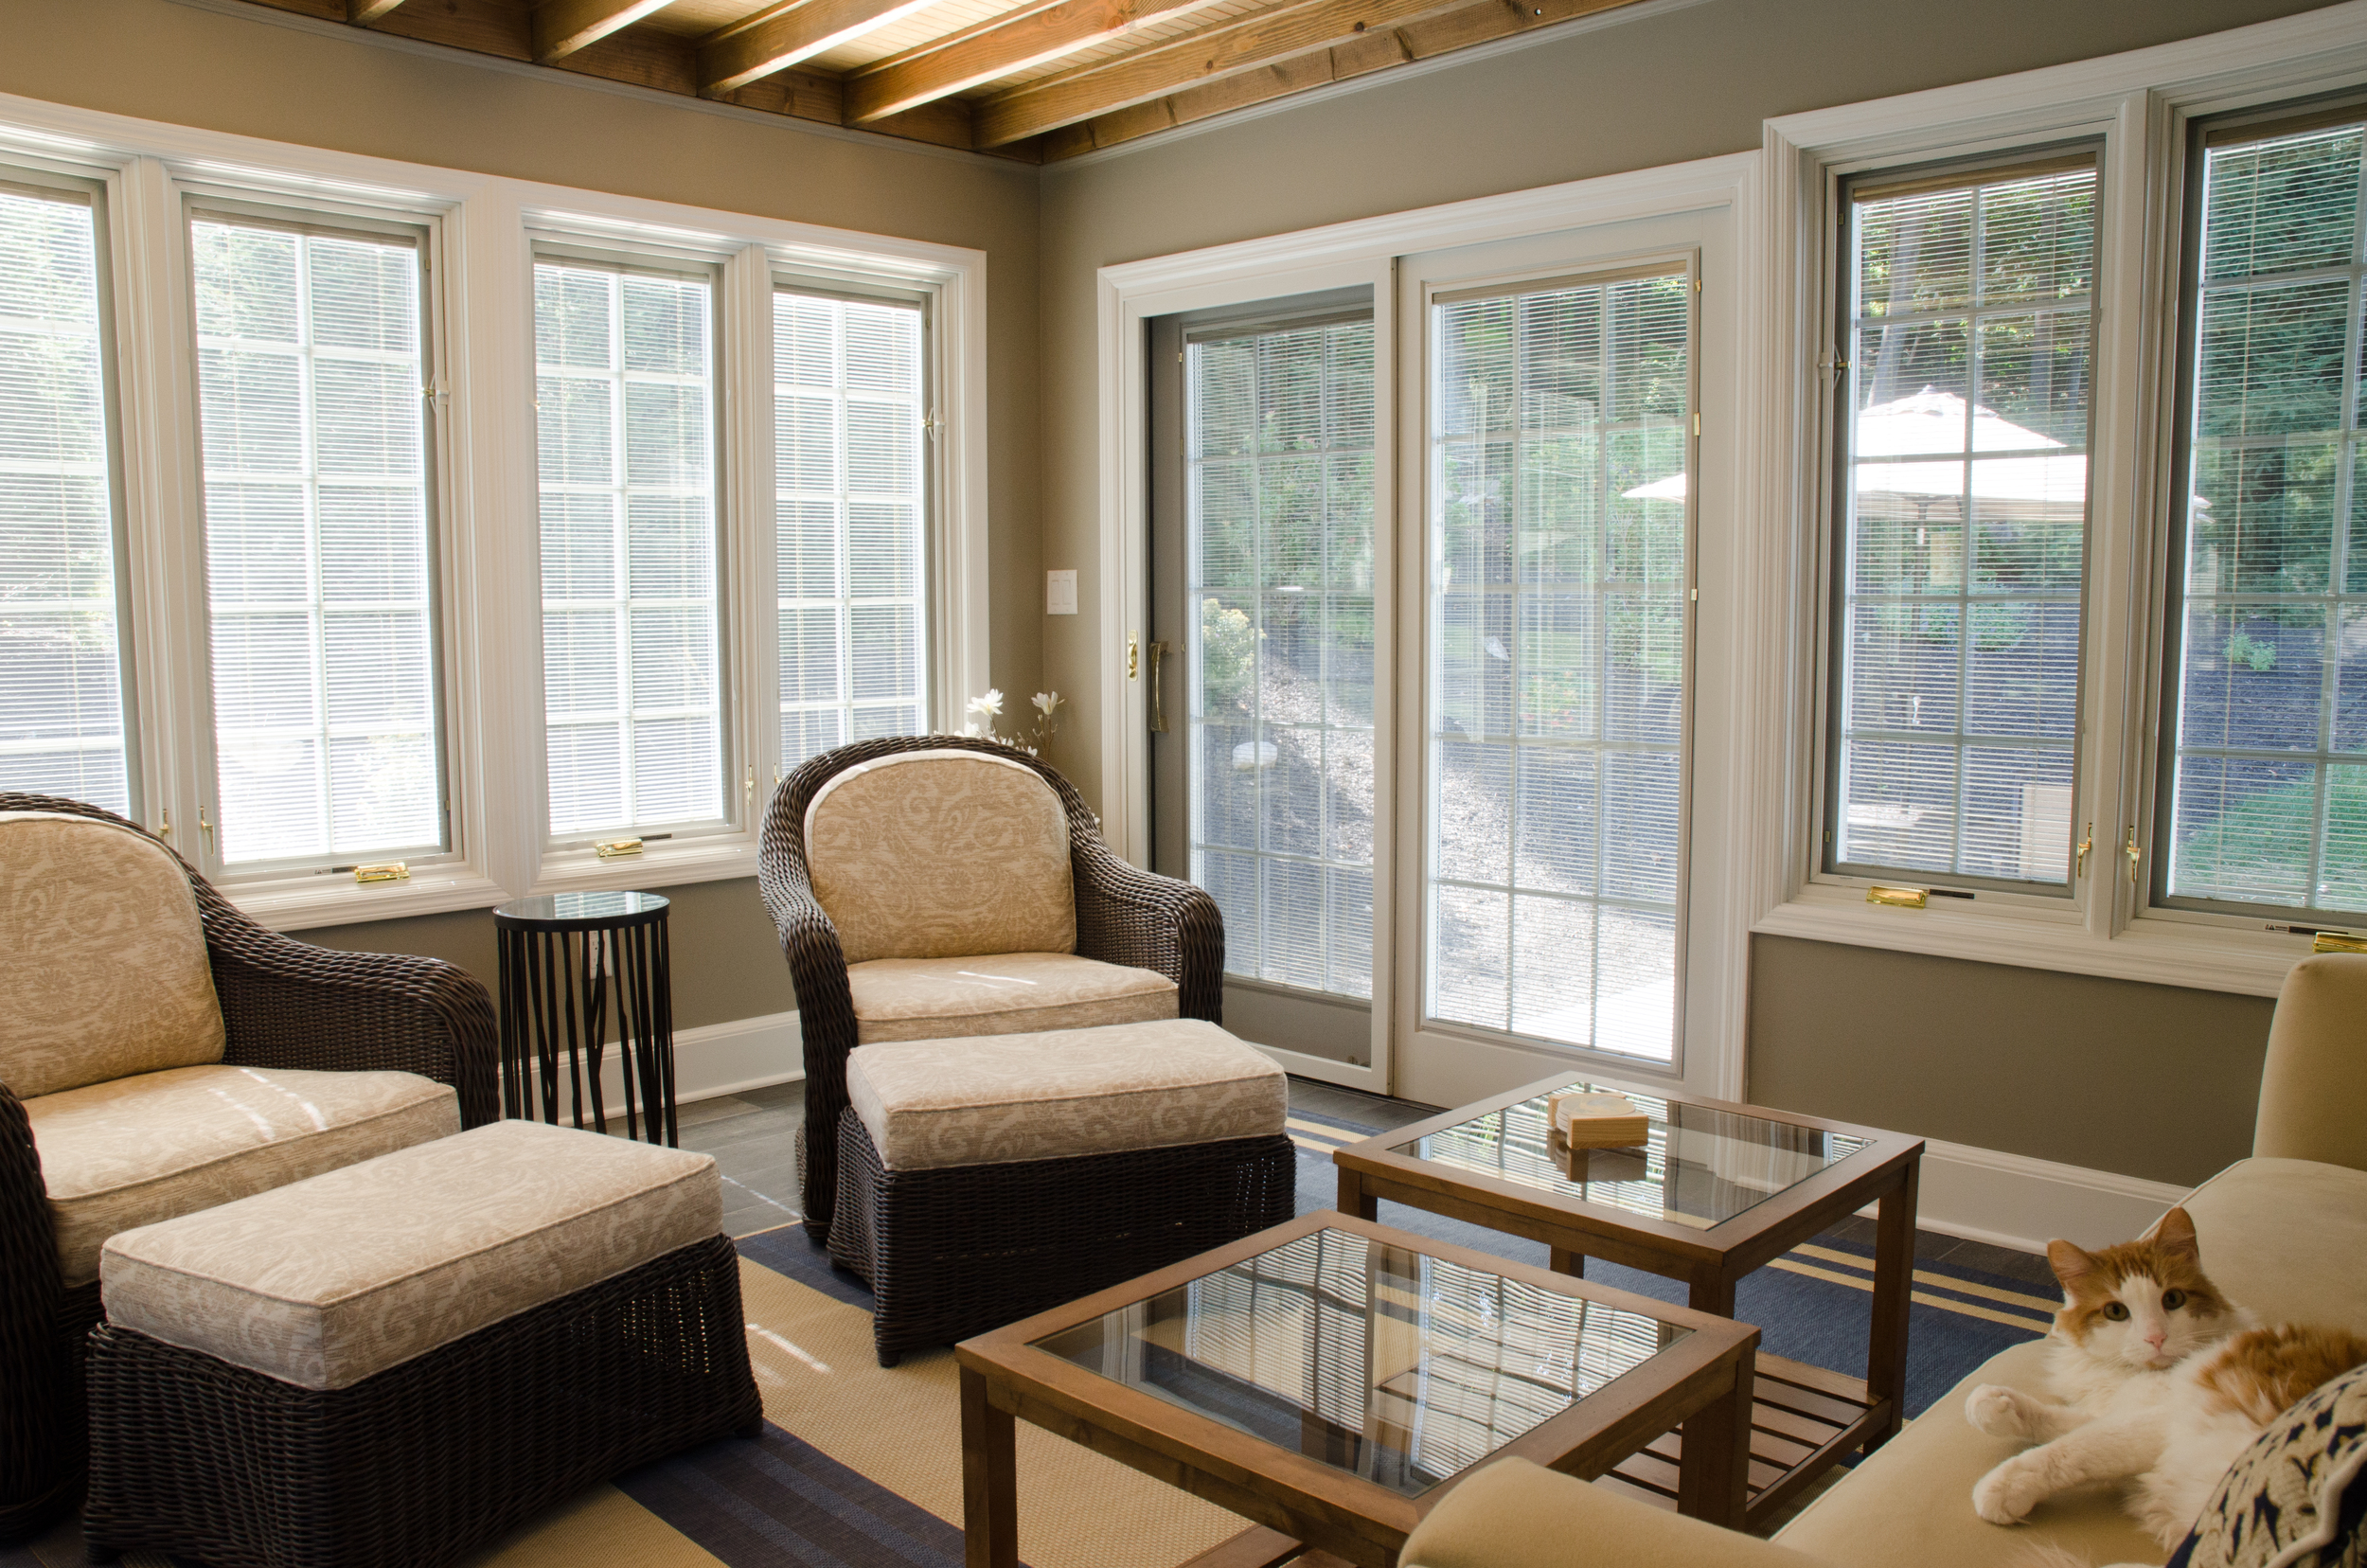 Custom sun room installation by Groundswell Contracting